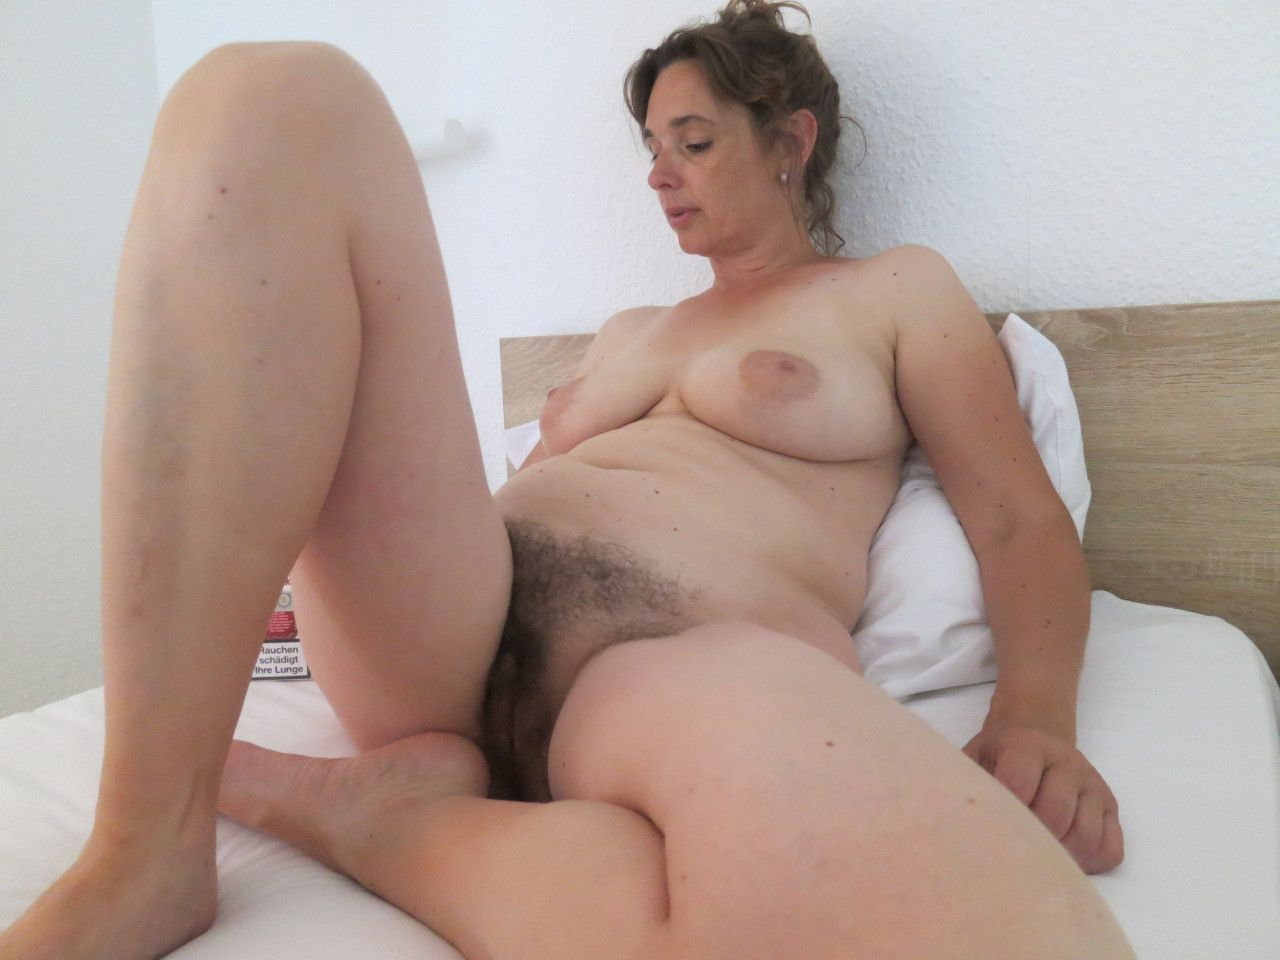 Sweet old lady with hairy cunt posing on the bed. Mature babe nude shows off her hairy cunt and natural tits lying on the bed